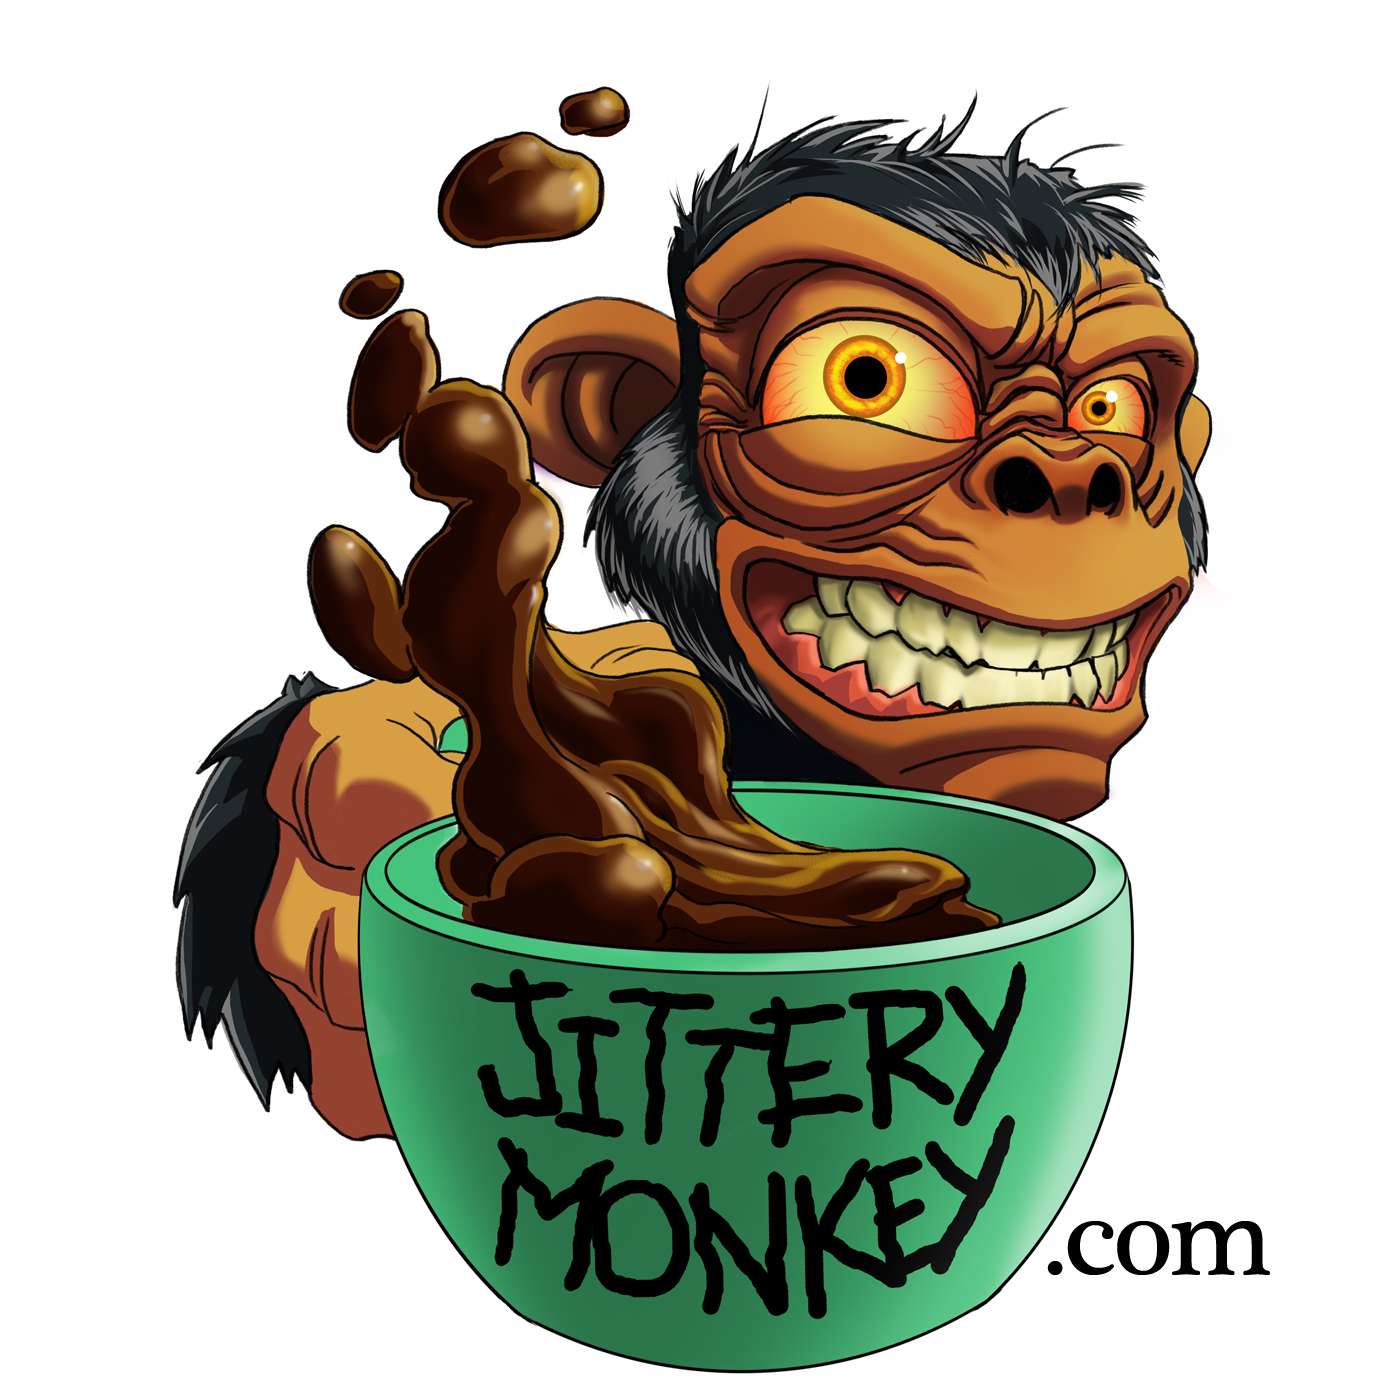 Jittery Monkey Podcasting Network